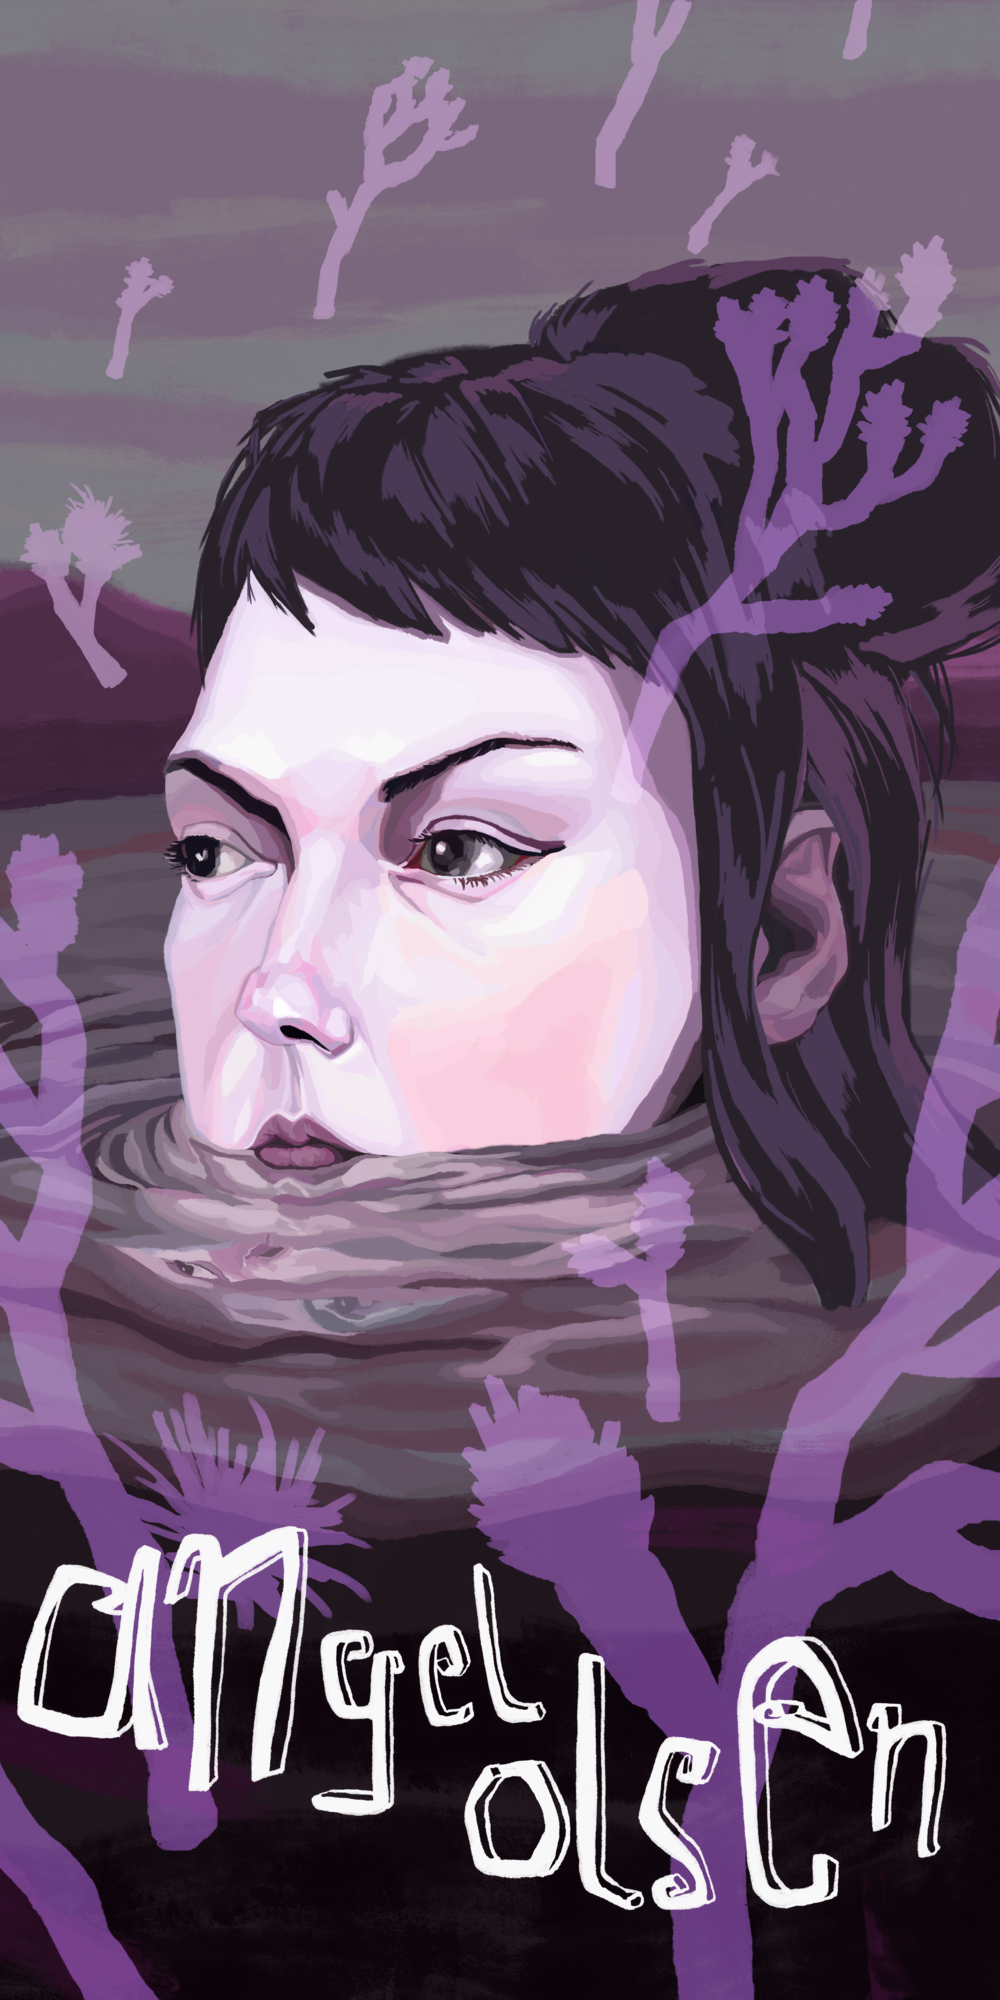 AngelOlsen_FINAL_72dpi_RGB_1000px2000px.png